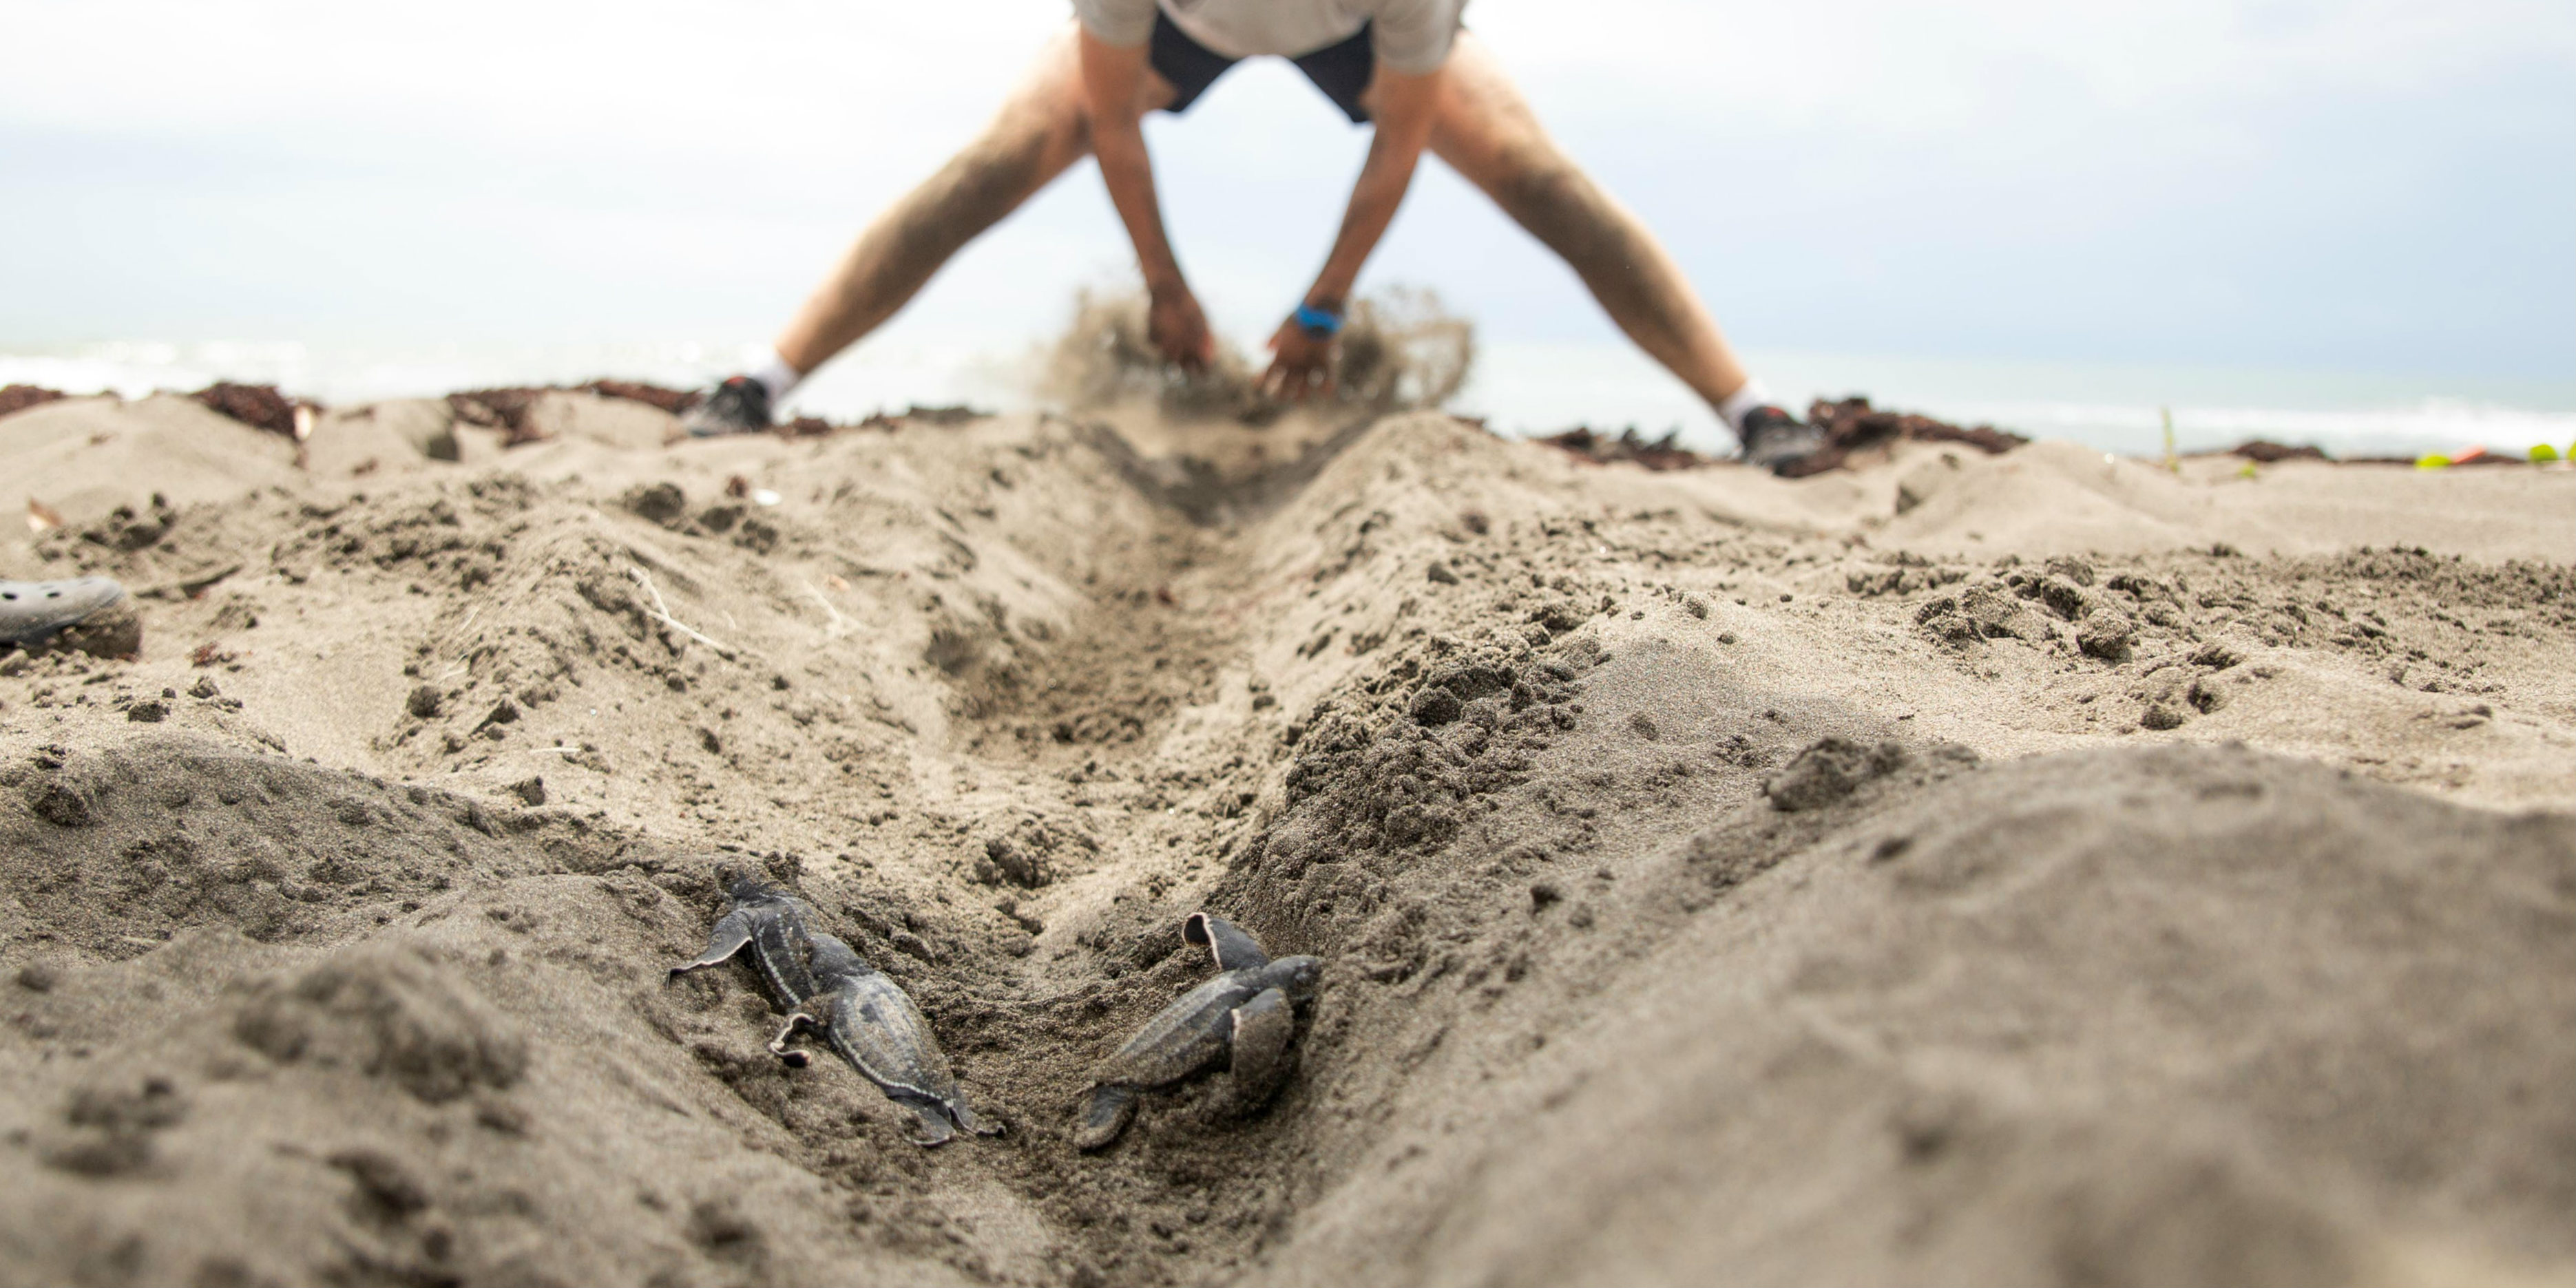 A GVI participant clears a path for sea turtles in costa rica, to help them make their way safely to sea.